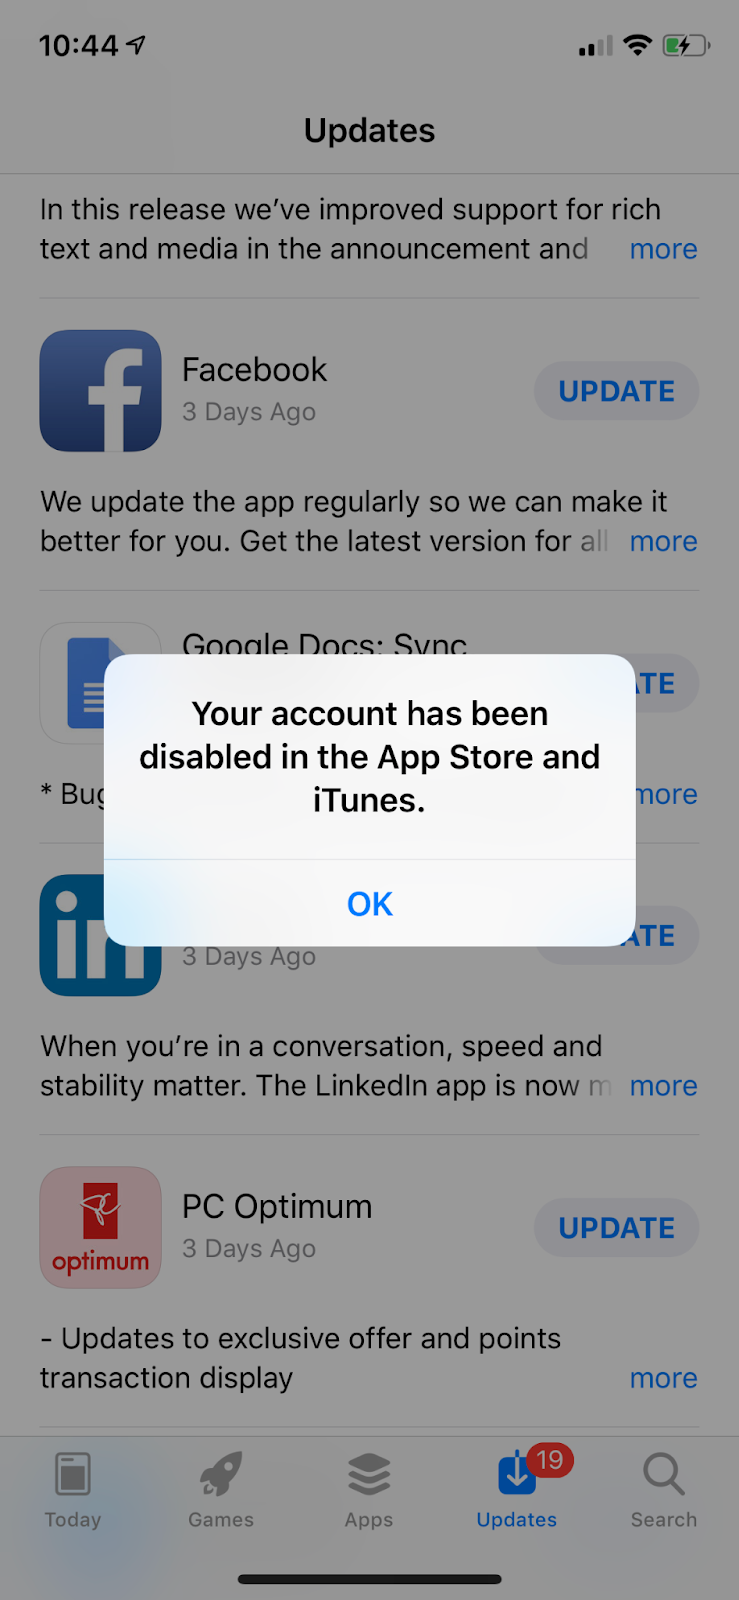 Notification that your account has been disabled in the App Store and iTunes